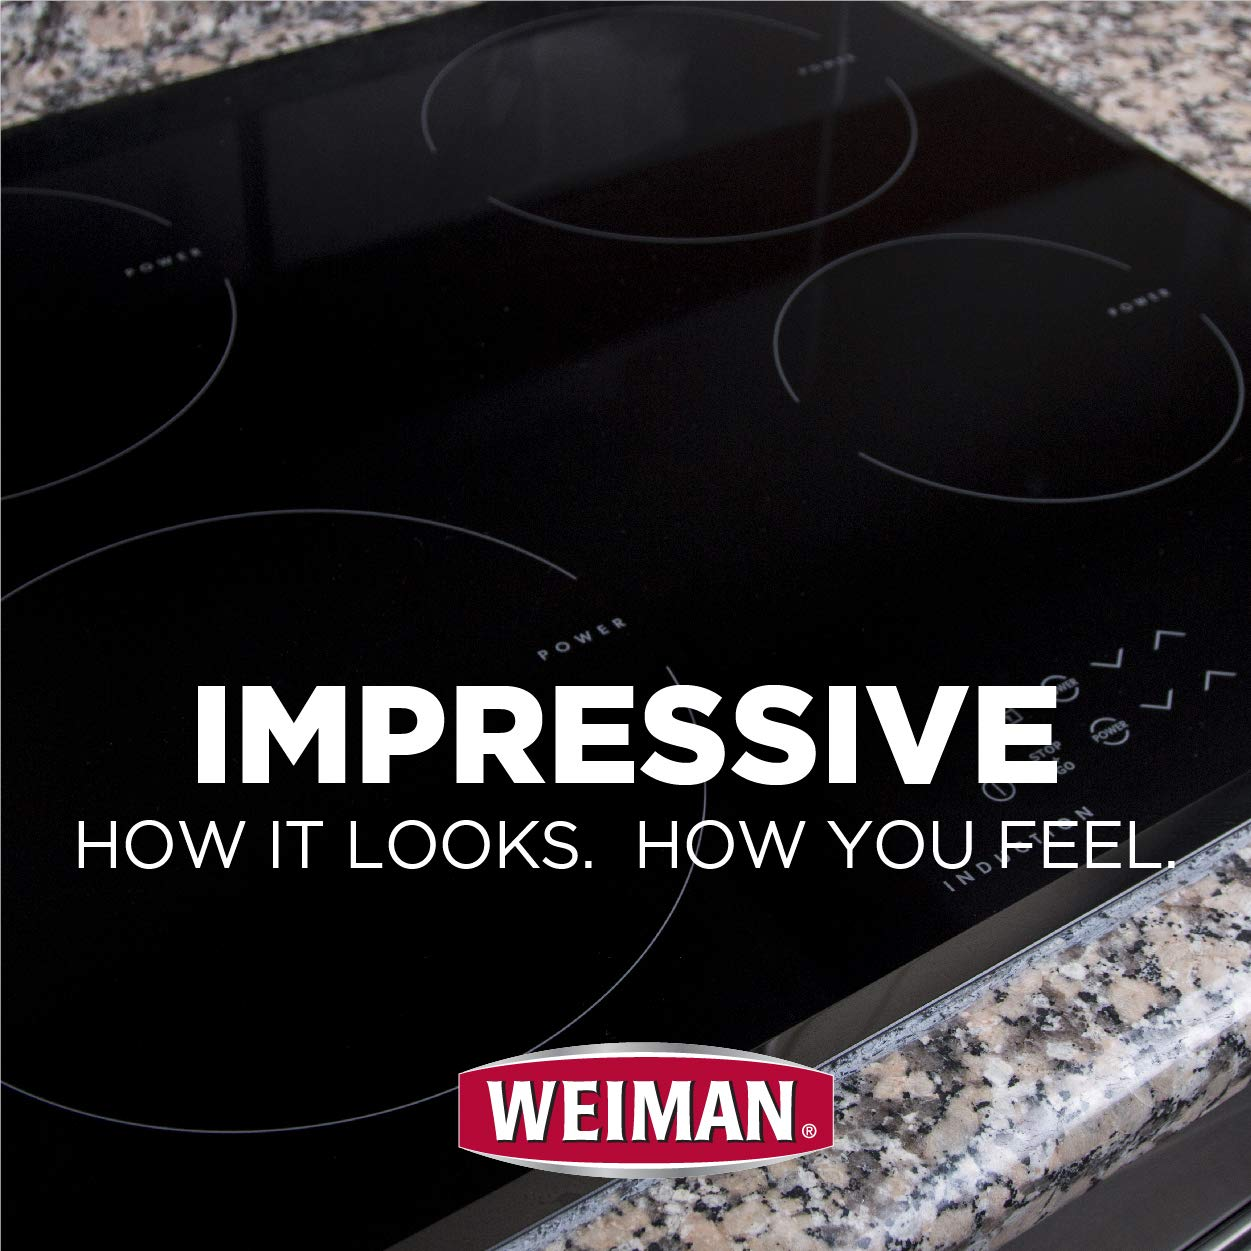 Weiman Ceramic & Glass Cooktop Cleaner - 22 Ounce [6 Pack] - Daily Use Professional Home Kitchen Cooktop Cleaner and Polish Use On Induction Ceramic Gas Portable Electric by Weiman (Image #2)